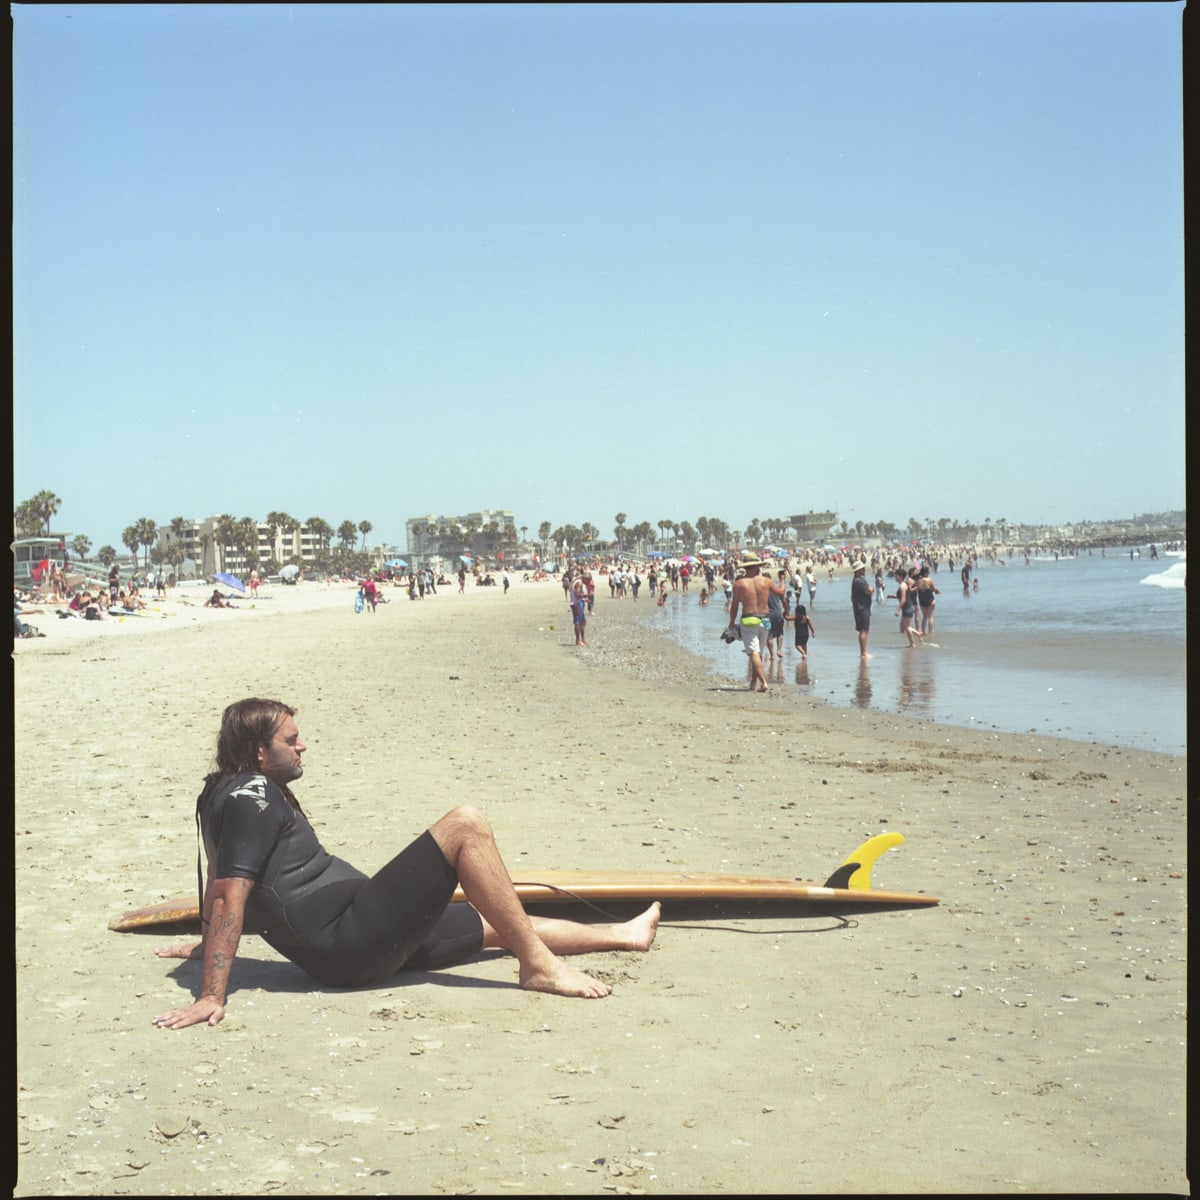 A surfer relaxing on the beach, California